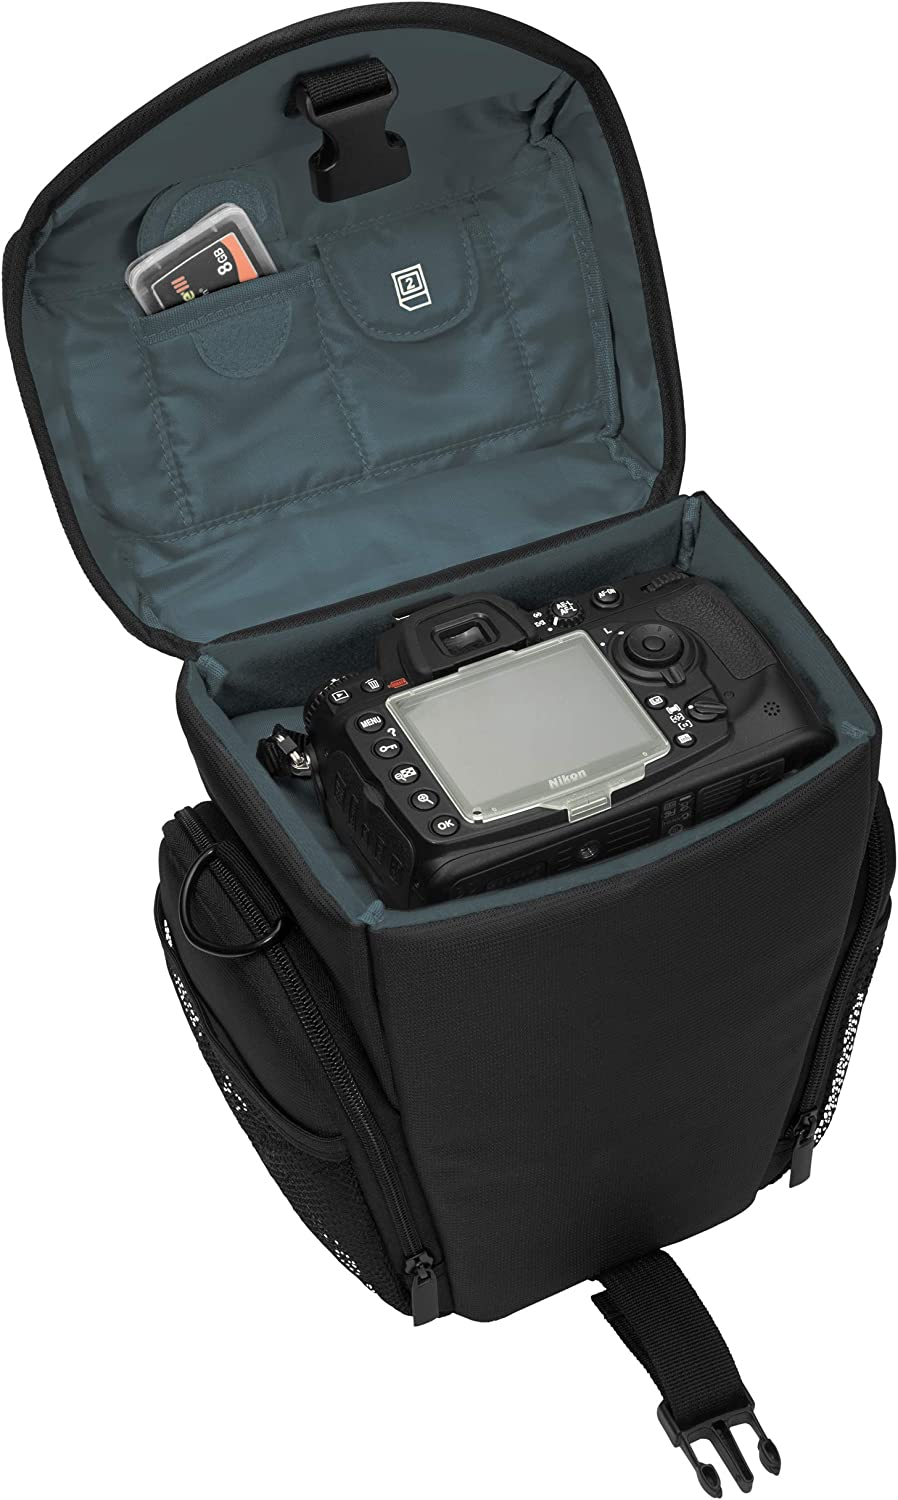 PEDEA Mobile Phone Case for Sony SLT-A58/K//-A58Y,////Panasonic Lumix//Space for Camera and Lens with Carry Strap and Accessory Storage with Screen Protector